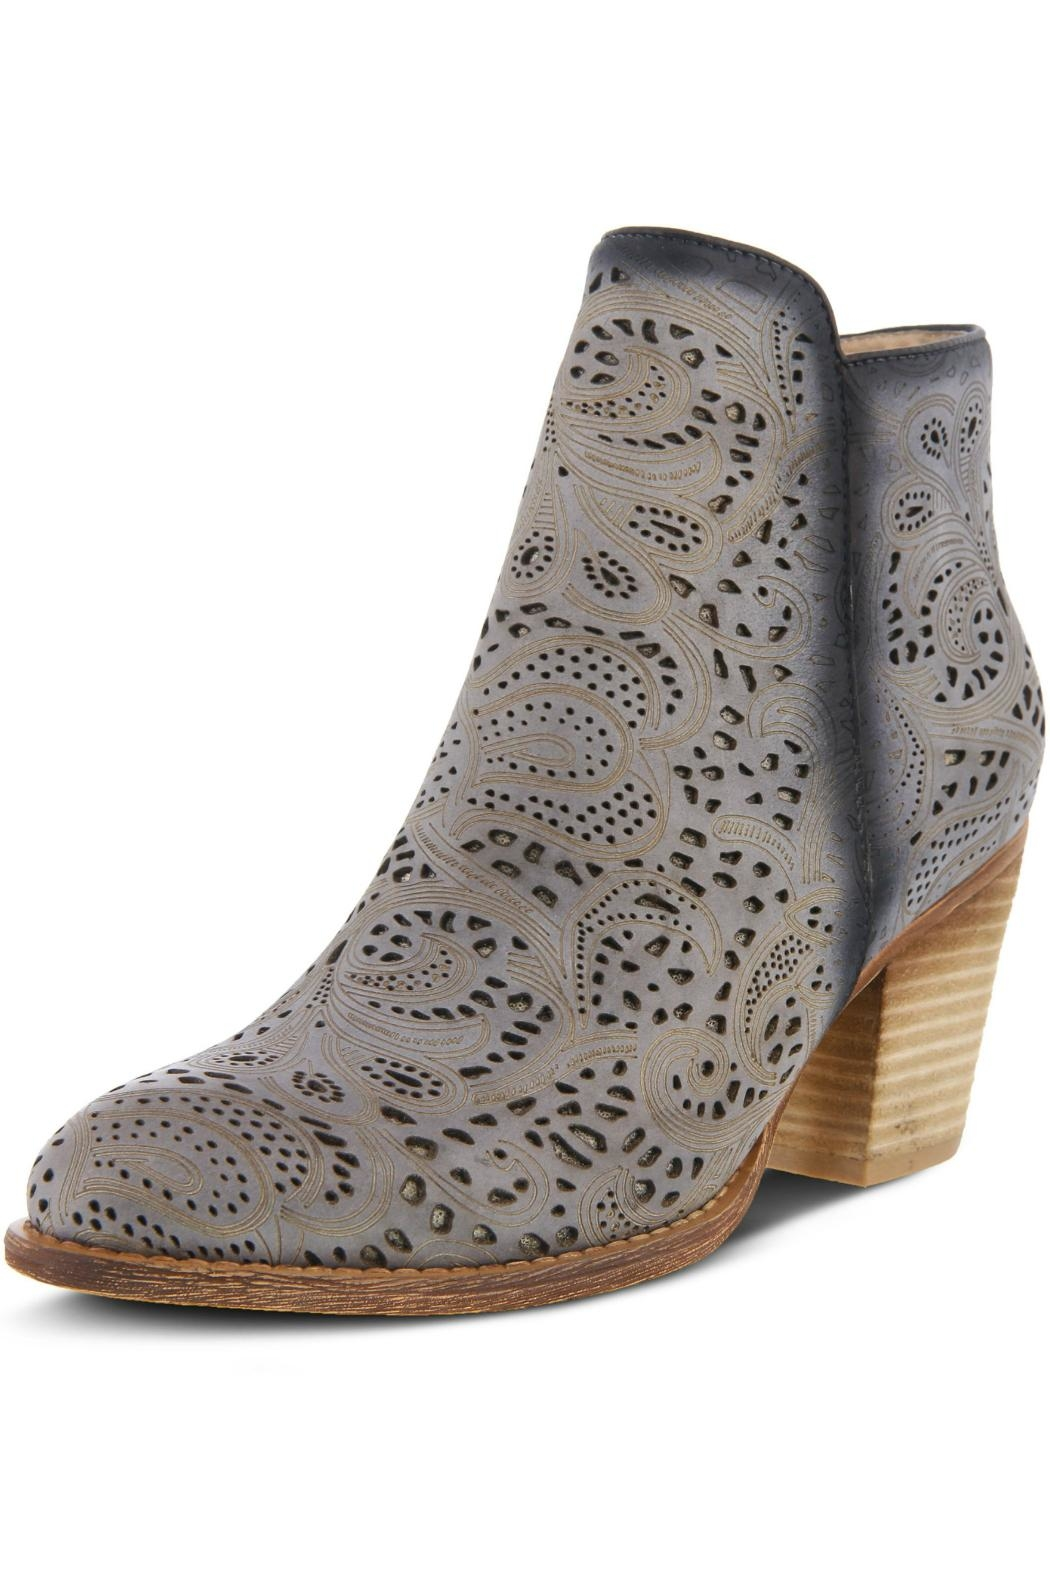 L'Artiste Floral Hand-Painted Bootie - Front Full Image